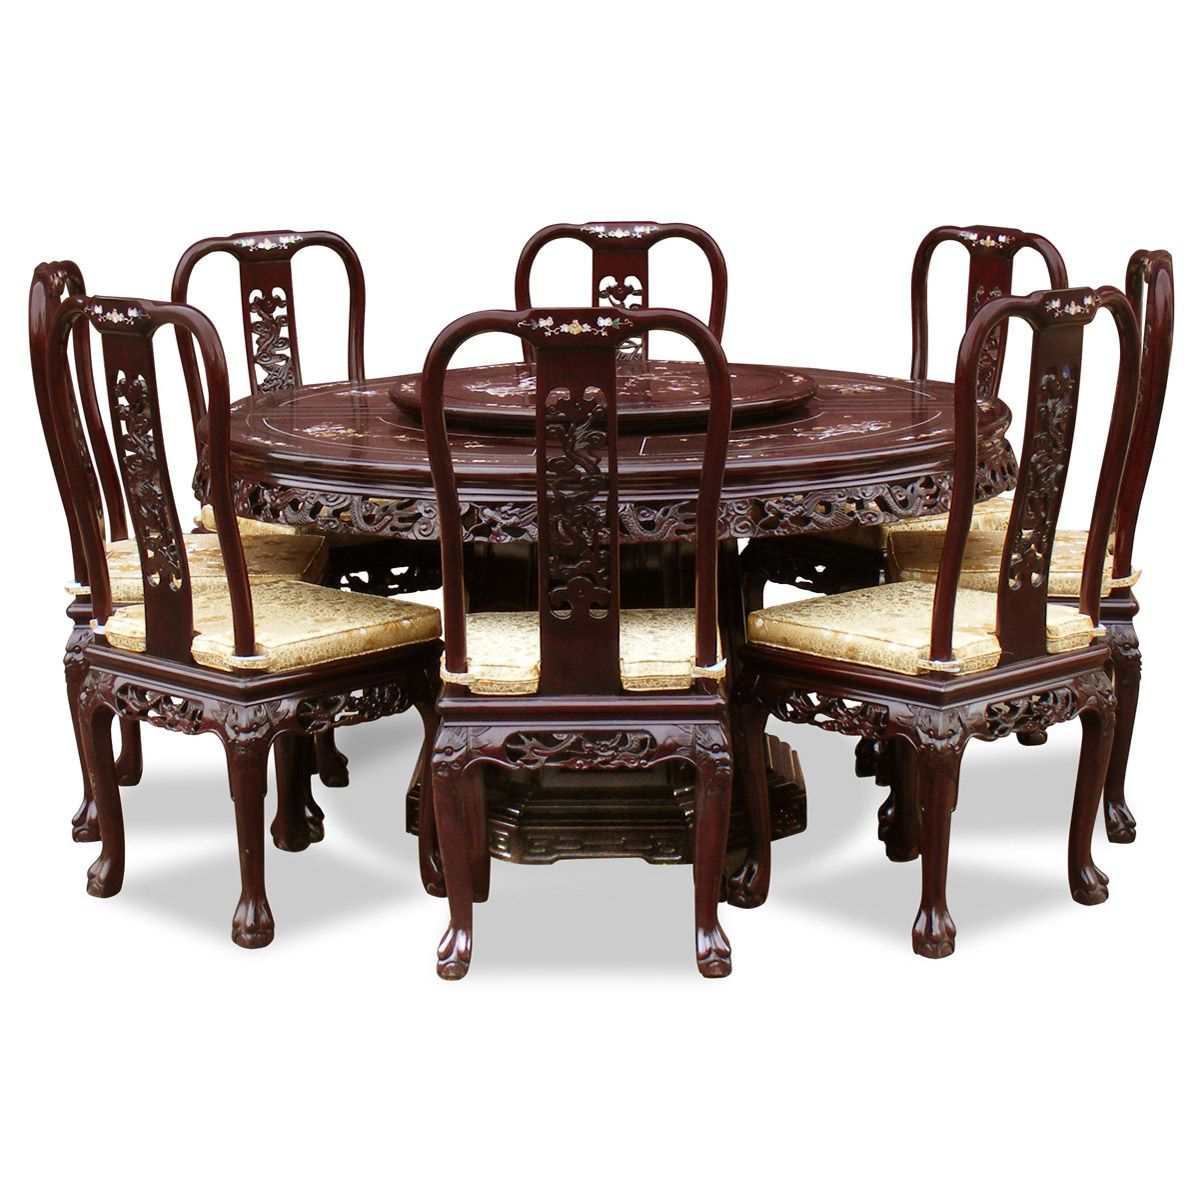 60in Rosewood Queen Ann Pearl Inlay Motif Round Dining Table With 8 Chairs.  The Style